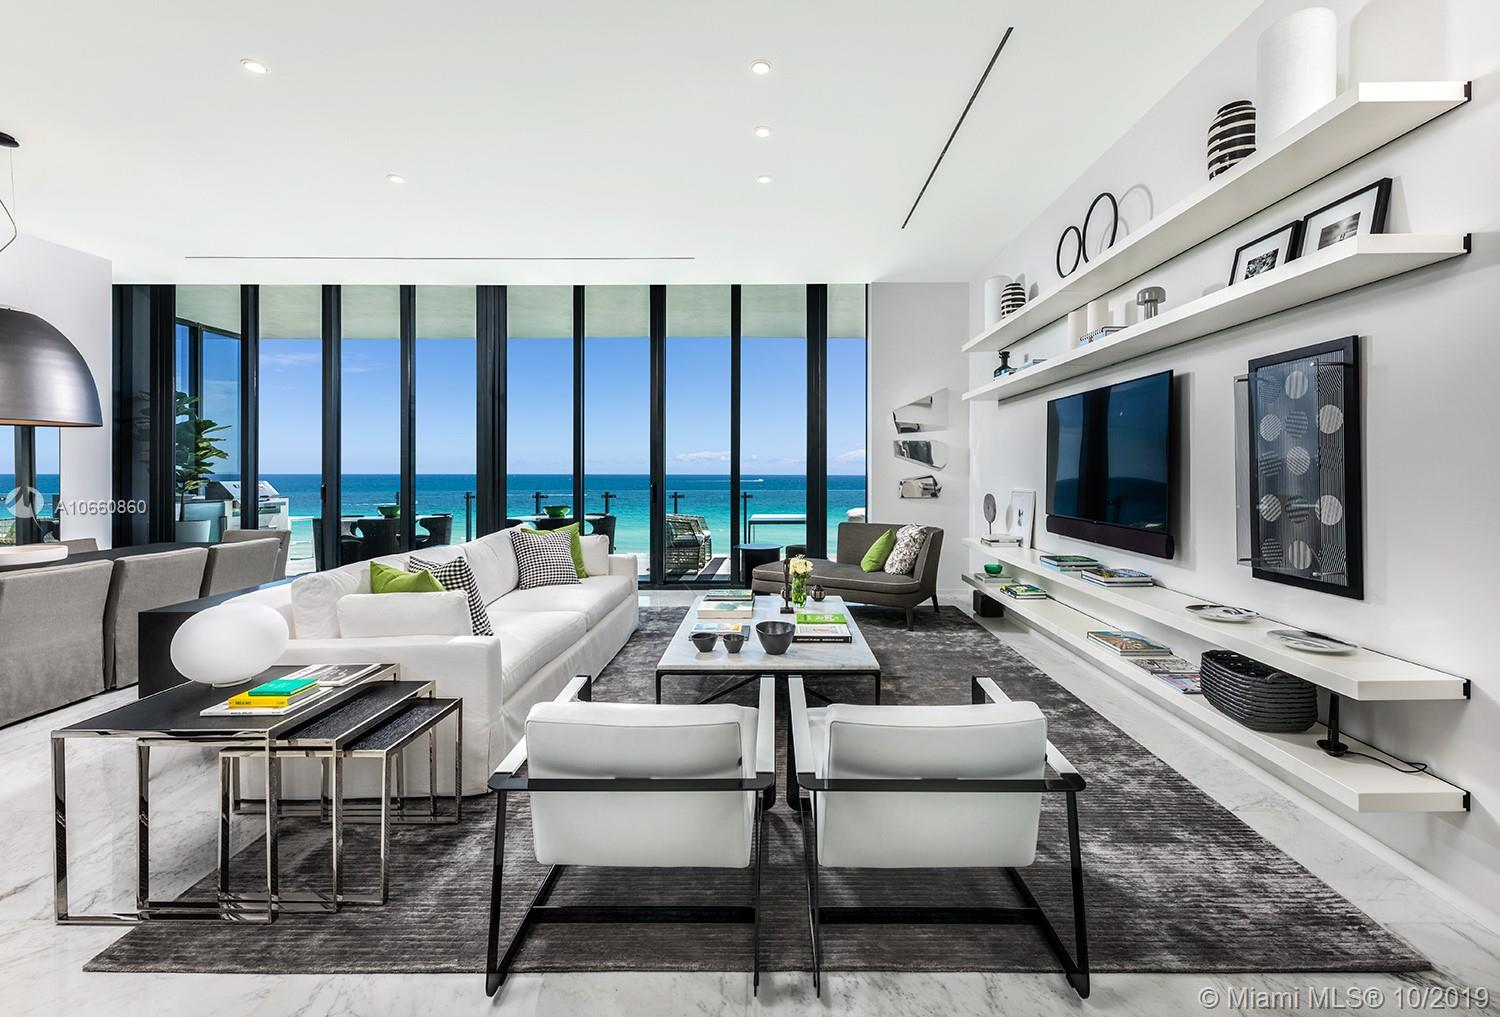 17141 Collins Ave, Unit #601 Luxury Real Estate